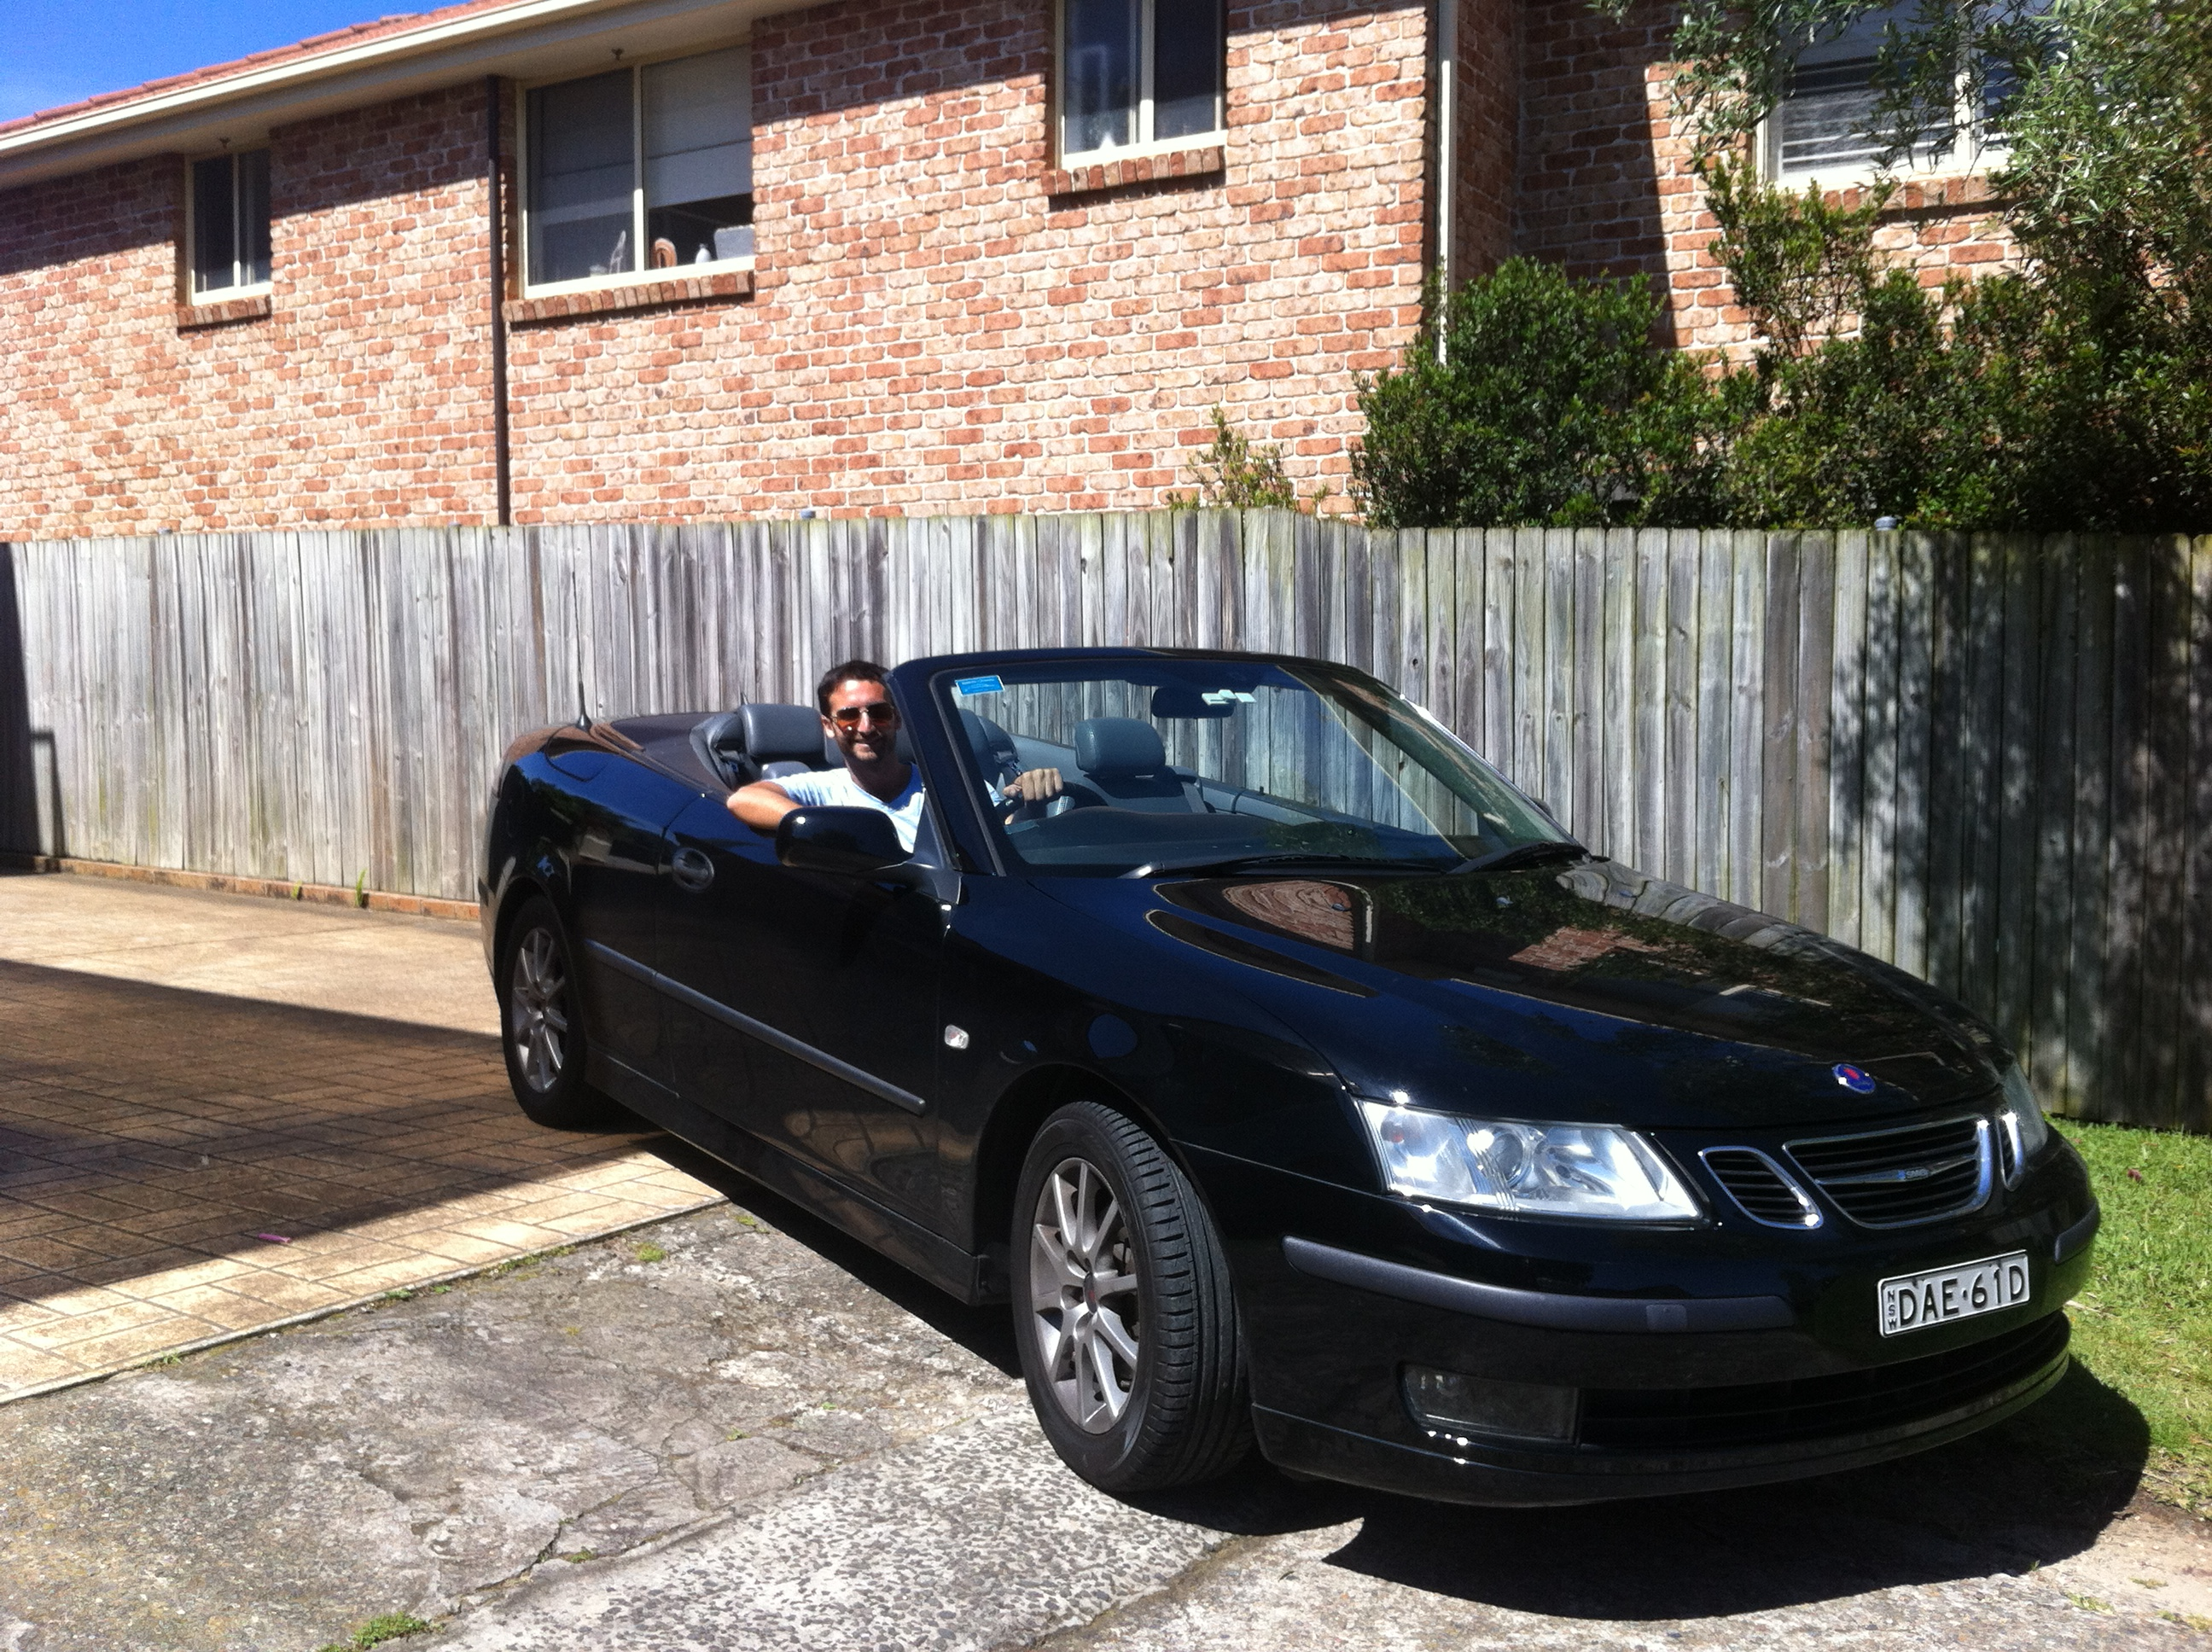 Picture of Jon's 2003 Saab 9-3 Convertible